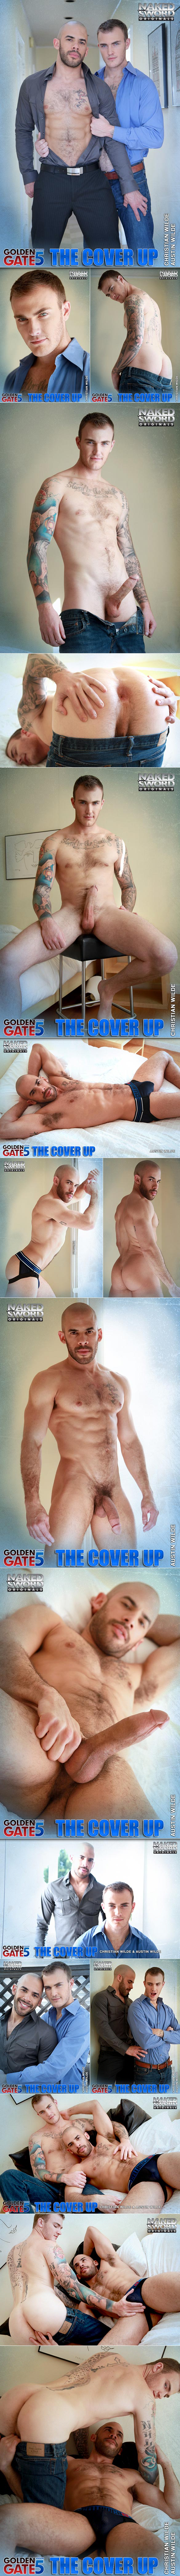 """NakedSword Originals: Chrstian Wilde bottoms for the first time in """"Golden Gate Season 5 - The Cover Up"""" (Episode 4)"""